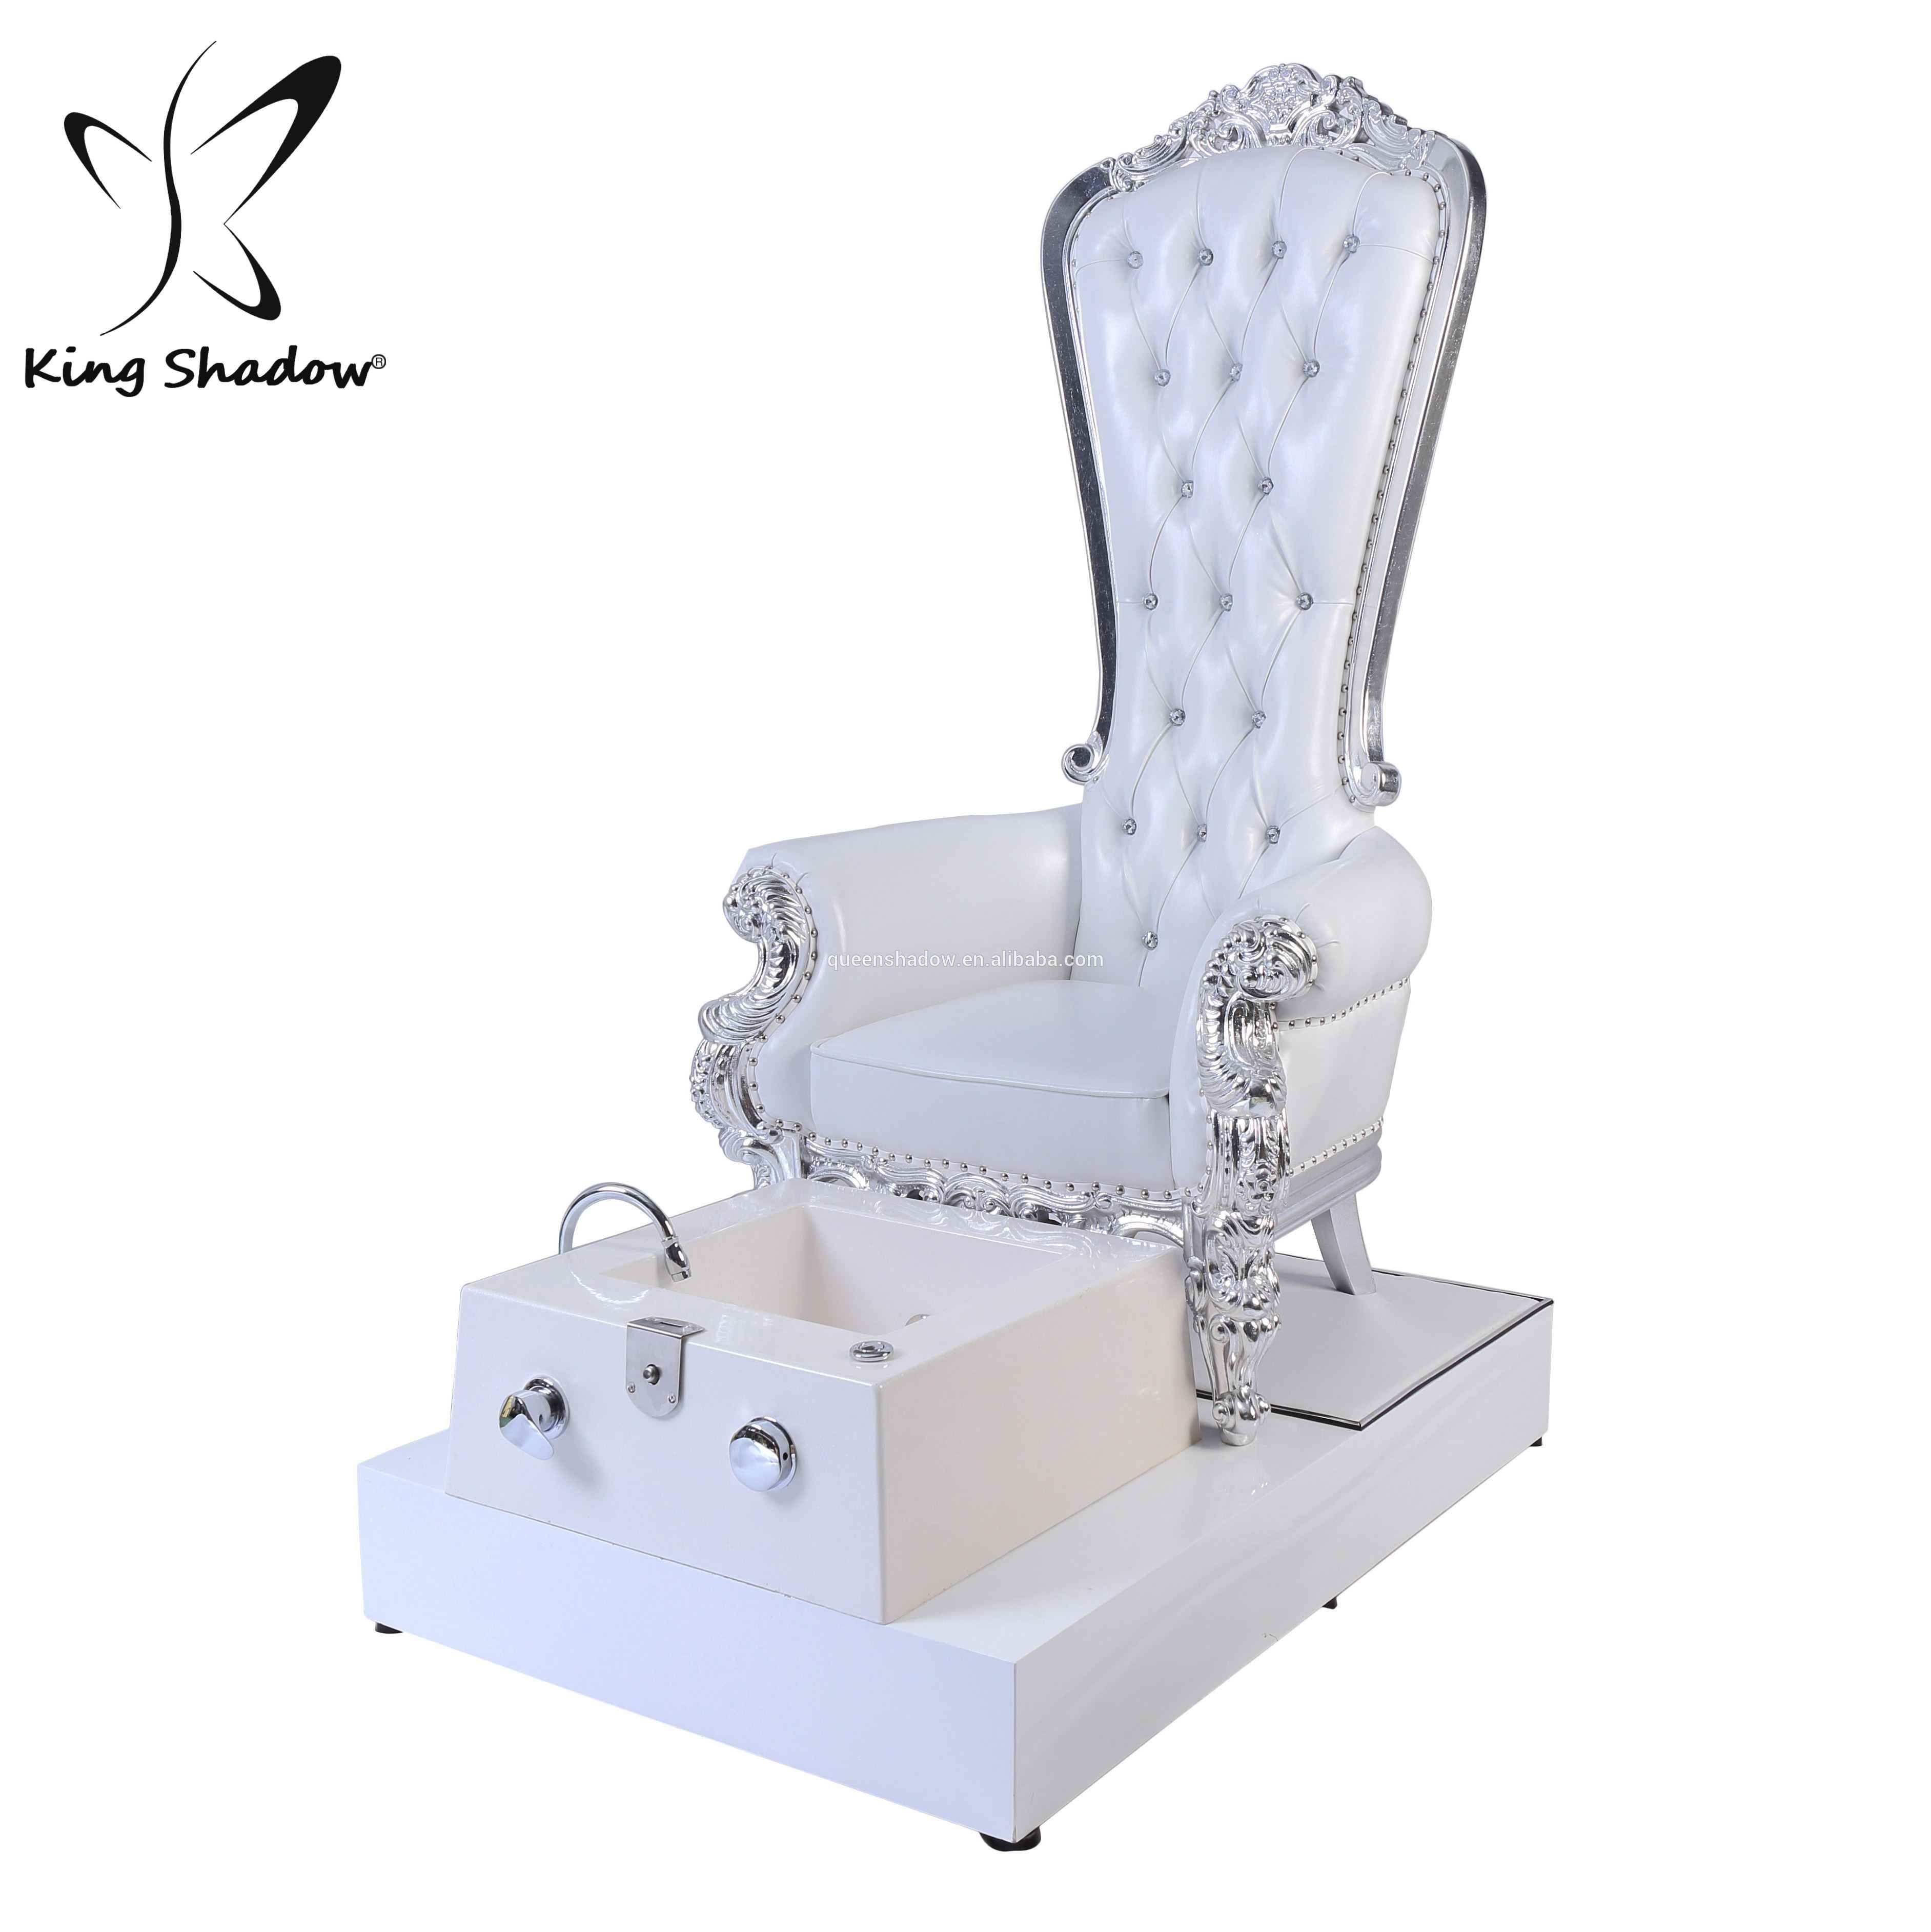 Source Kingshadow Beauty Salon Equipment Pedicure Foot Spa Massage Chair For Sale On M Alibaba Com Spa Pedicure Chairs Salon Furniture Pedicure Spa